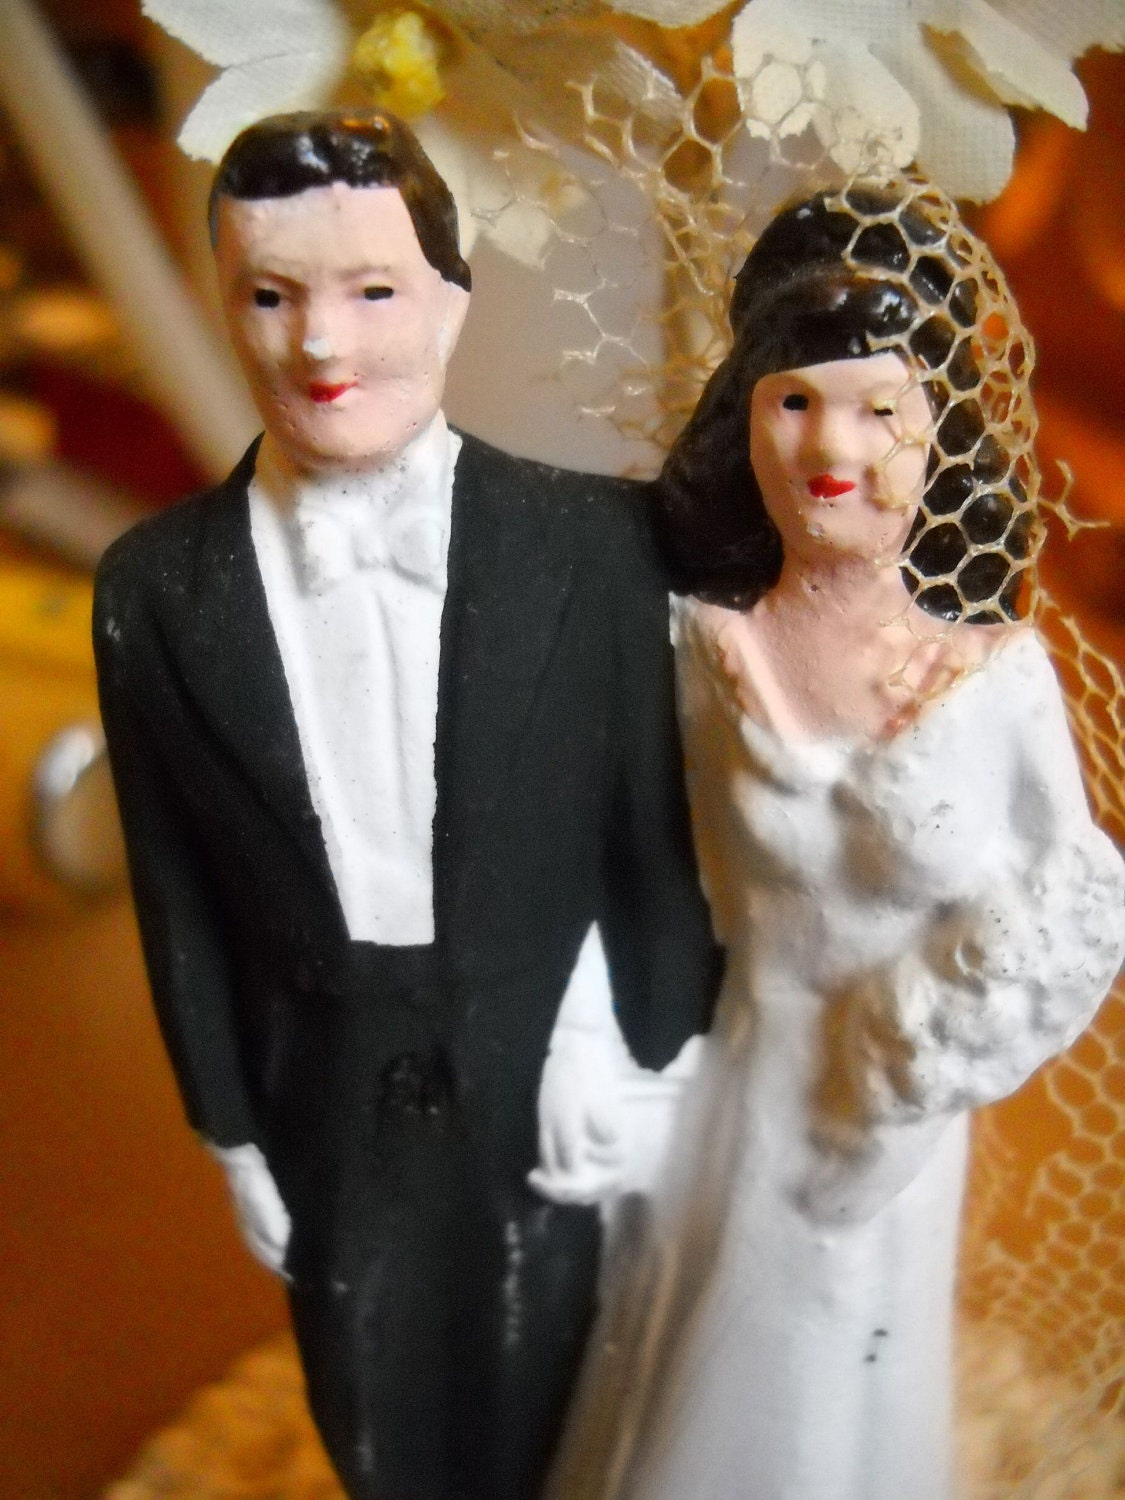 Vintage Brunette Bride and Groom Wedding Cake Topper From dragonflyonbrady